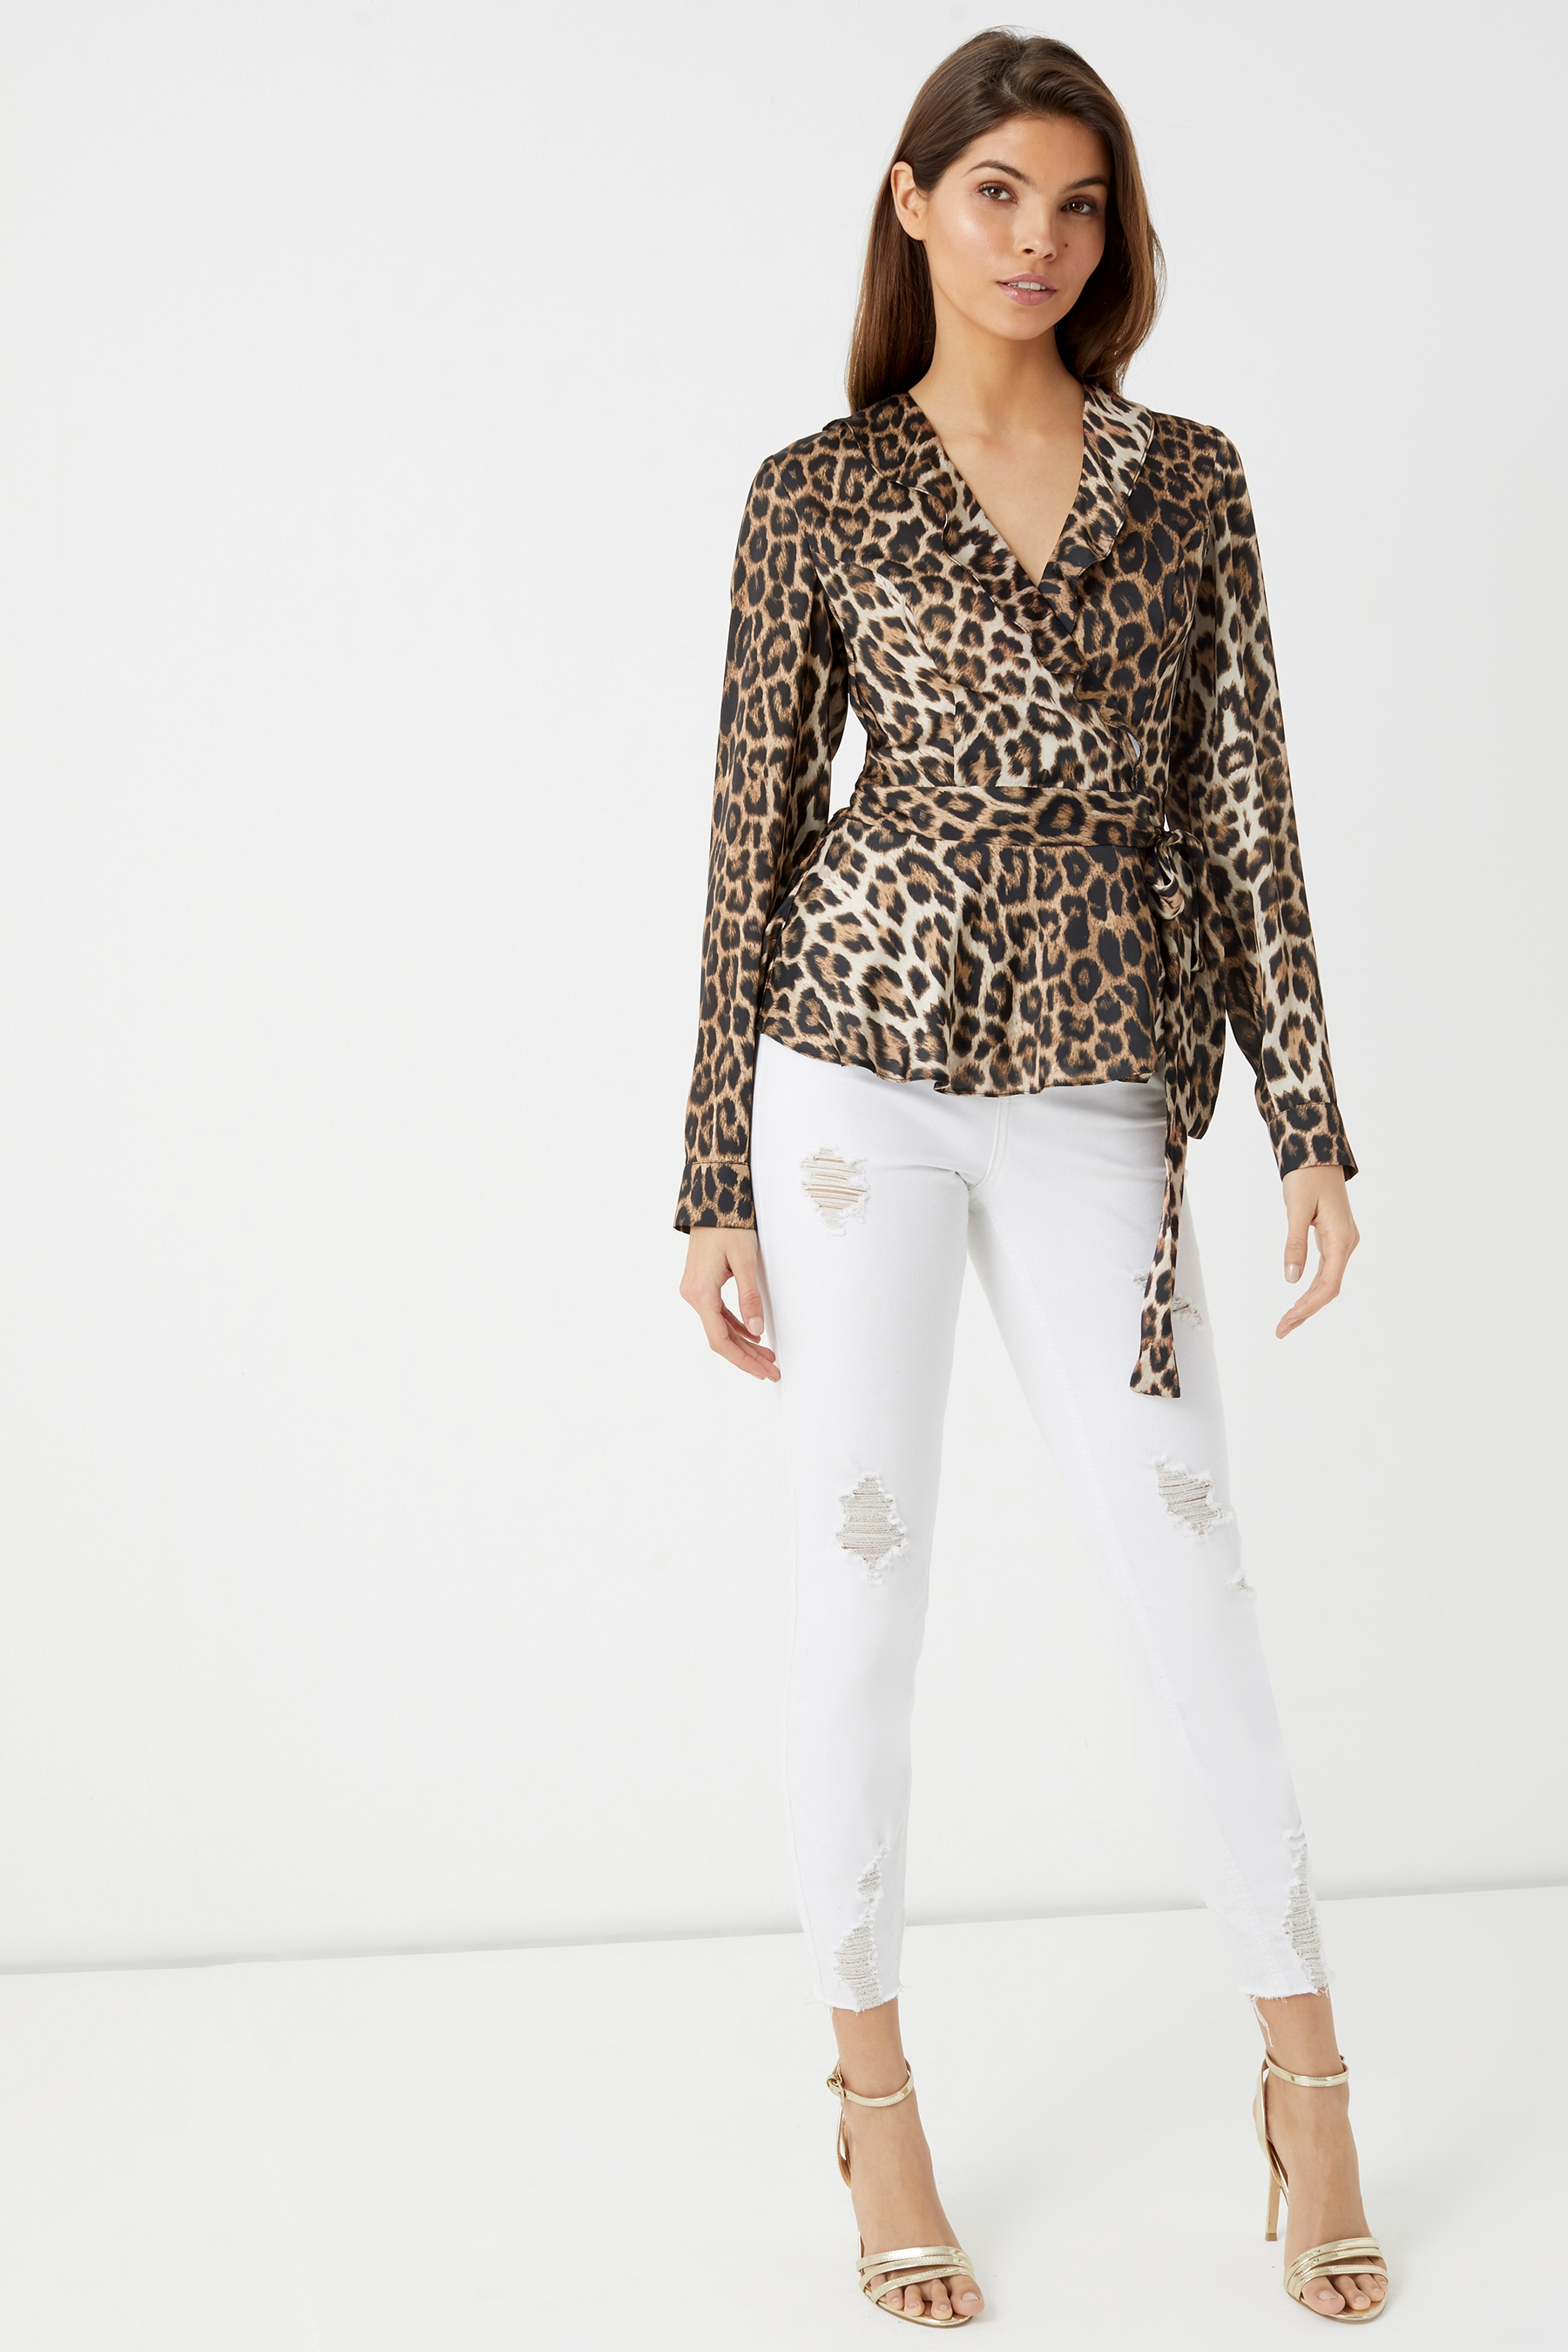 a7a8e62c628 Womens Lipsy Satin Leopard Wrap Top - Brown in 2019